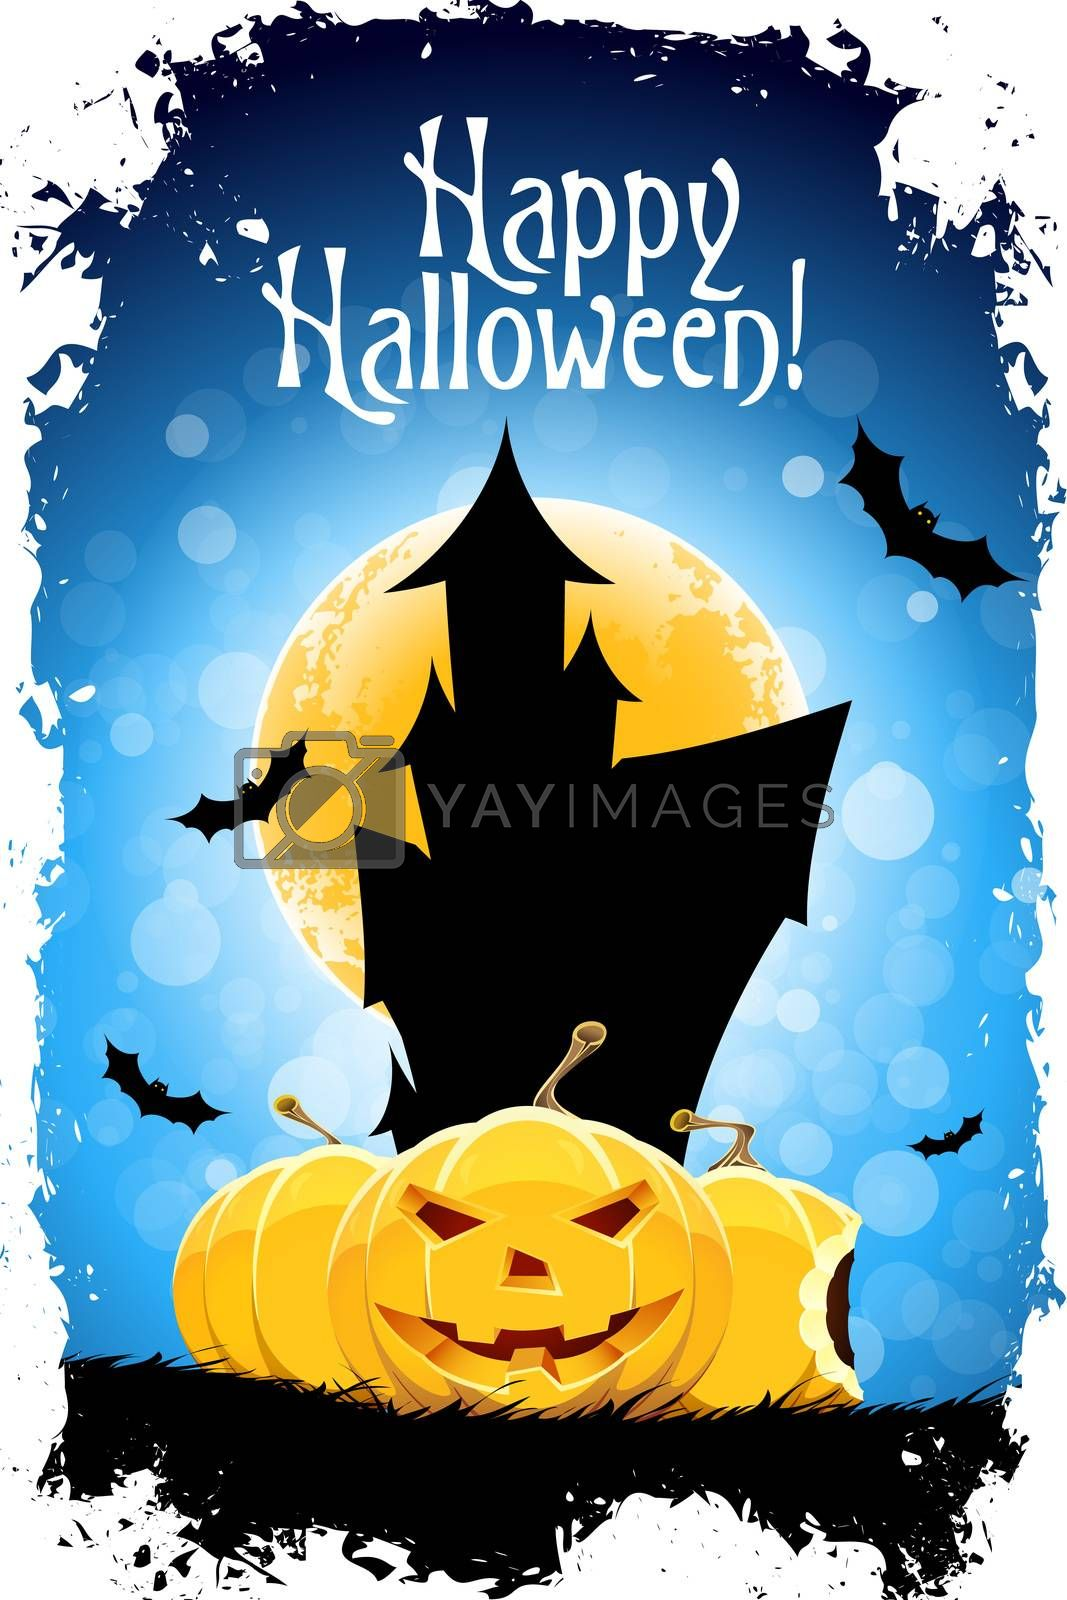 """Abstract Blue Halloween Card with Message """"Happy Halloween!"""""""